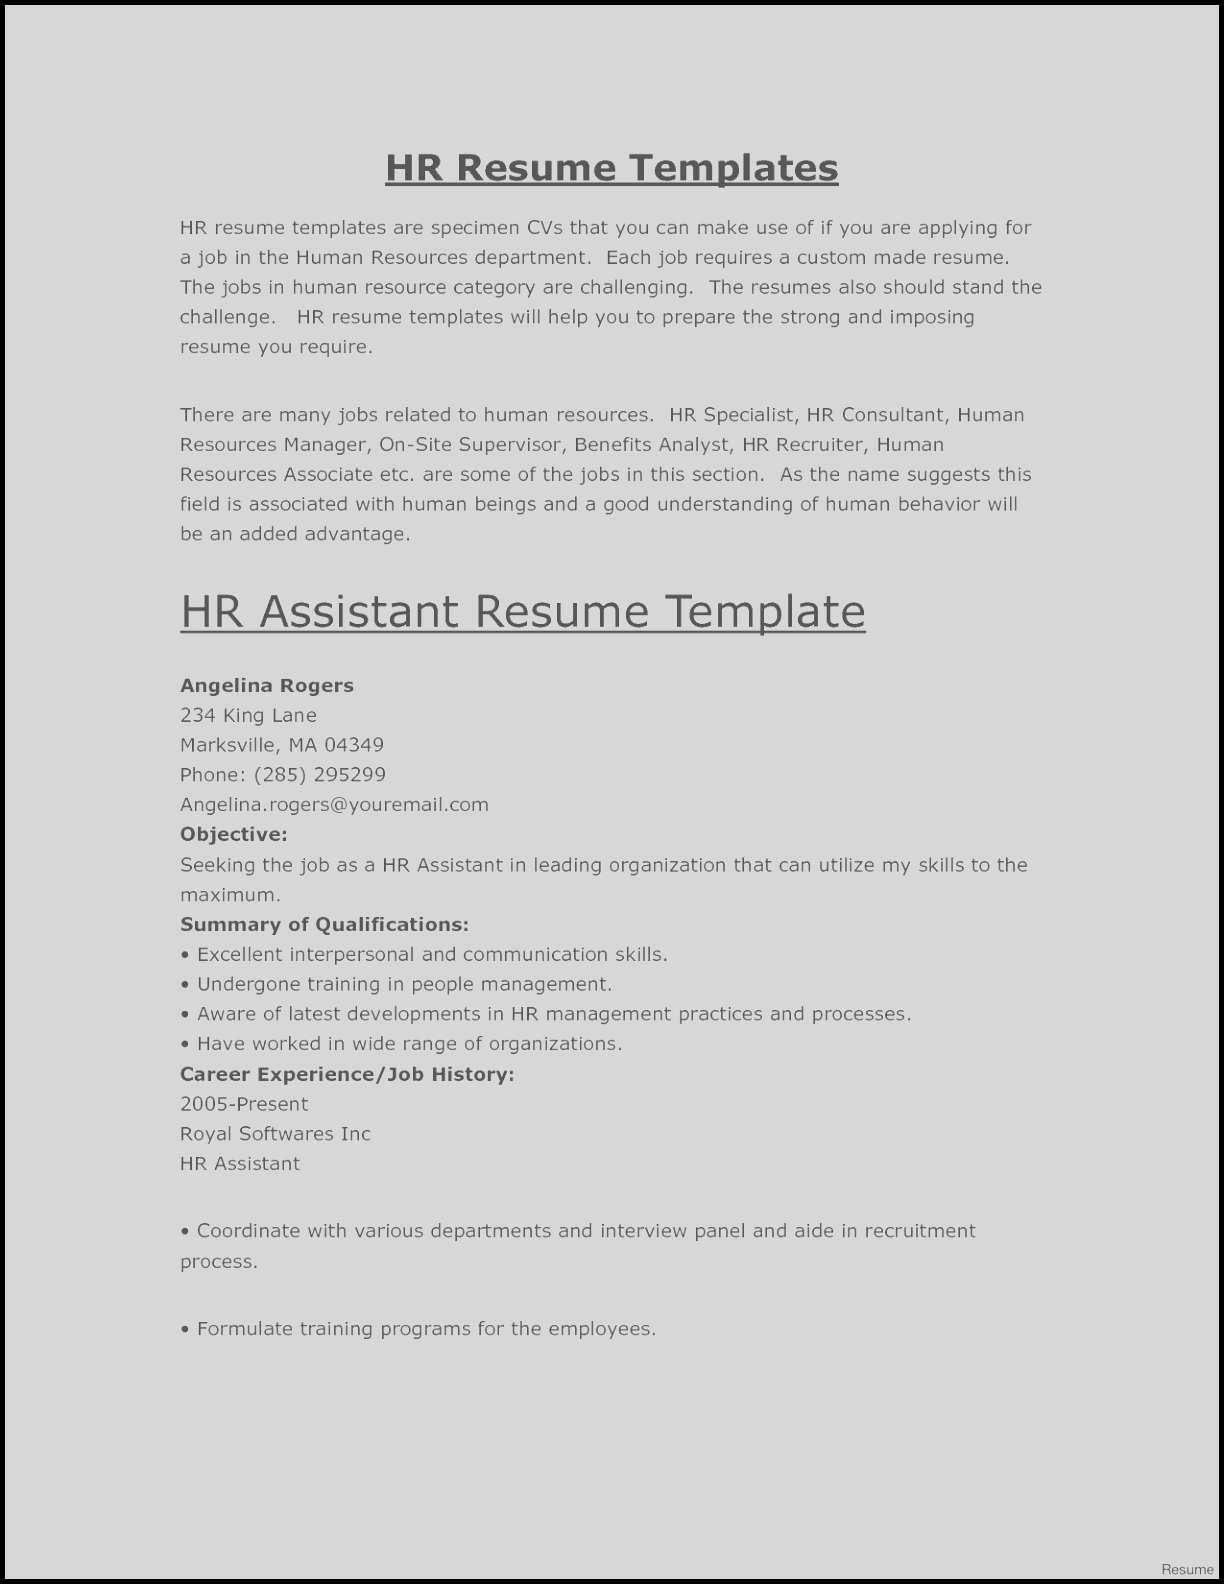 Tableau Developer Resume - Skills Used for Resume Cto Resume Project Management Resume